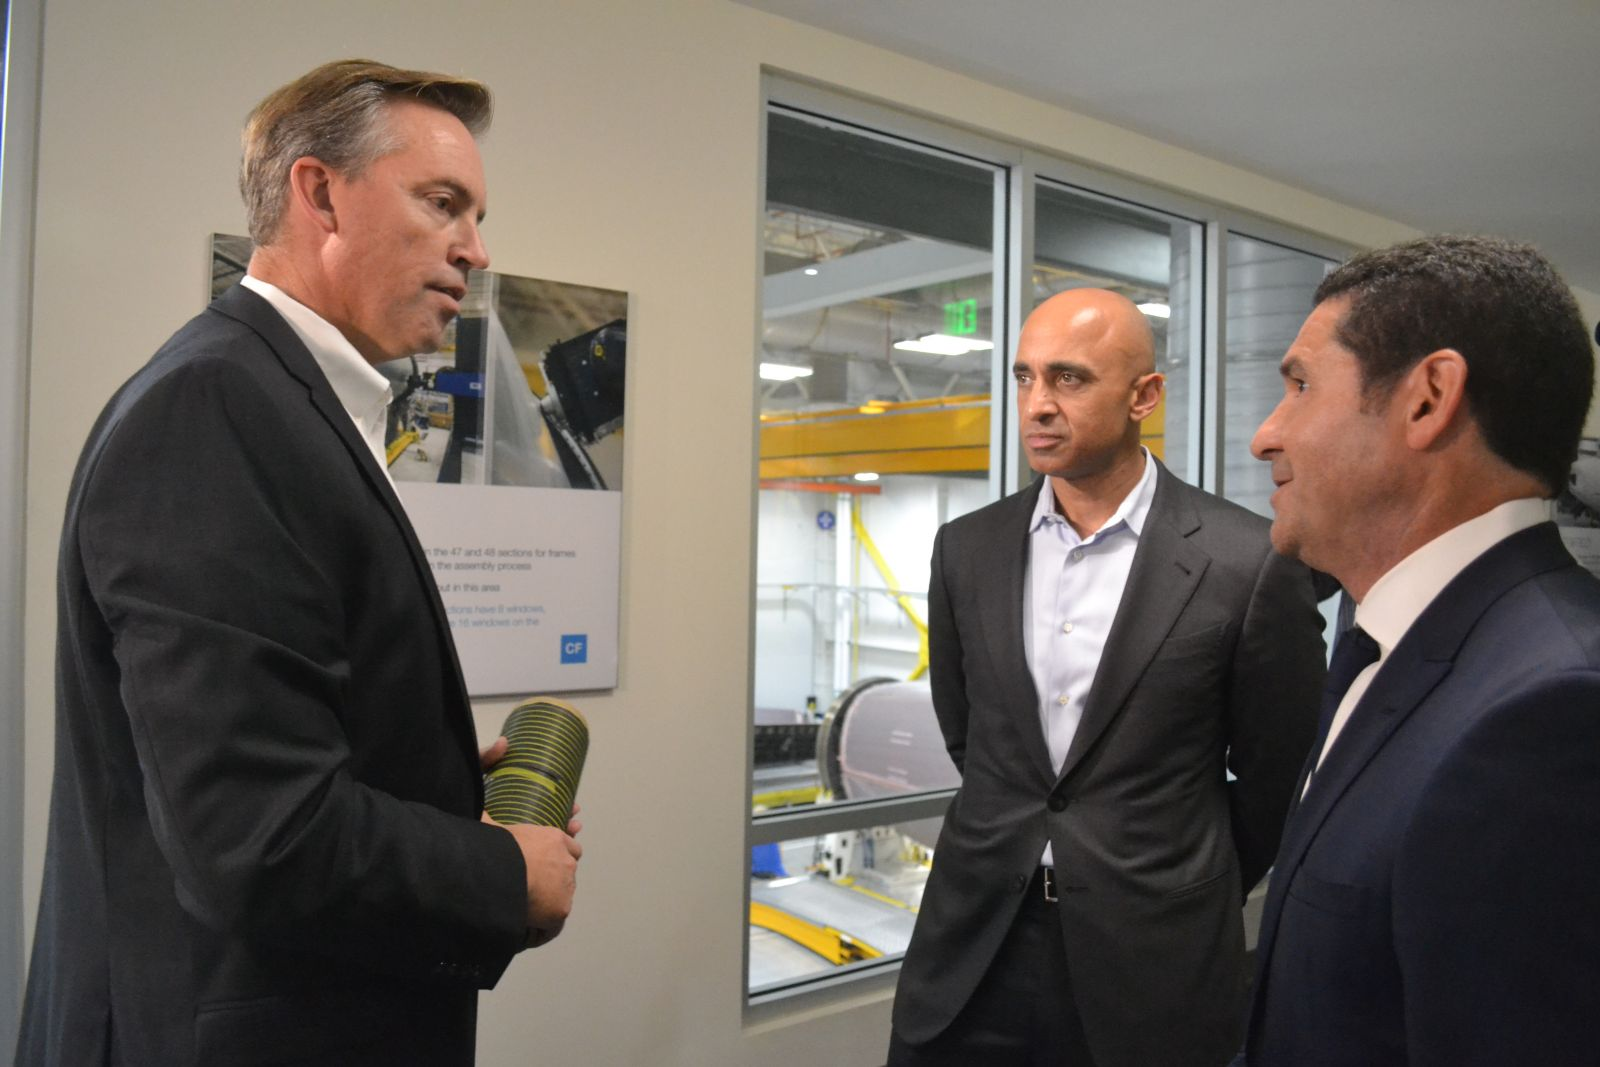 Darrel Larson, Boeing S.C. director of aftbody operations, (from left); UAE Ambassador Yousef Al Otaiba; and David Carbon, vice president of 787 operations, tour Boeing S.C.'s aftbody facility last month. (Photo/Liz Segrist)